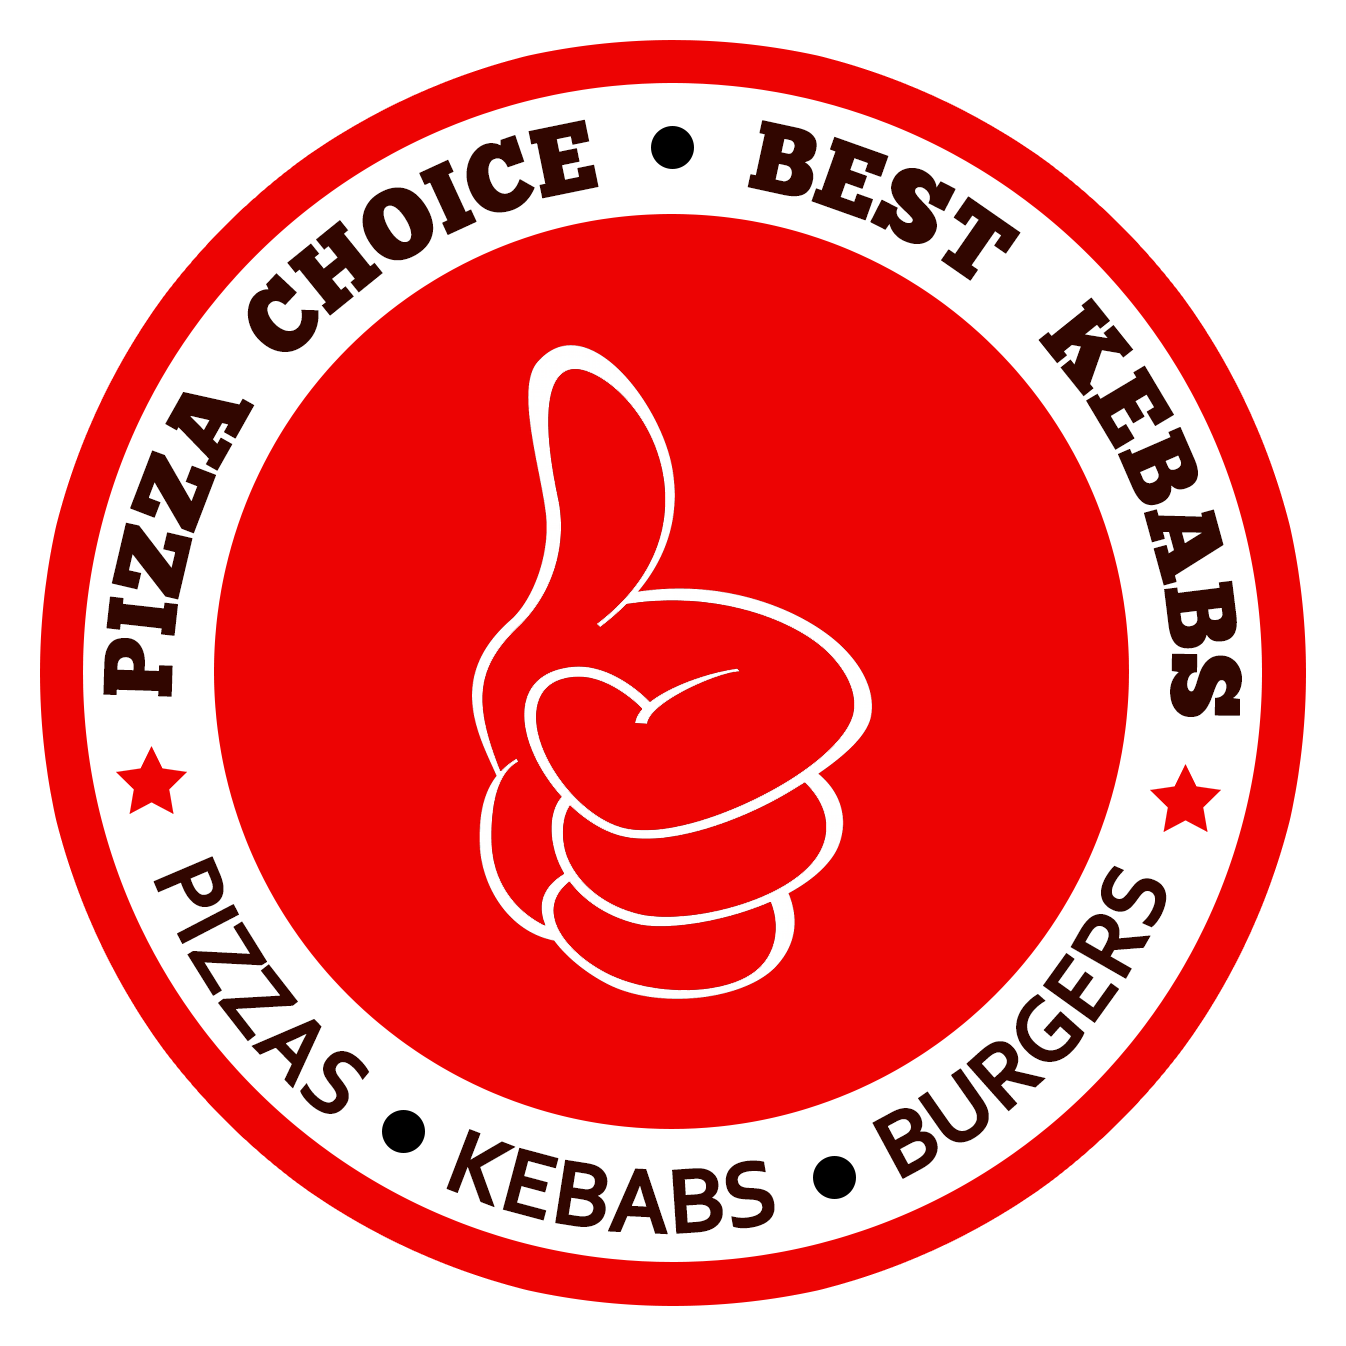 Pizza Choice And Best Kebab Pizza Choice And Best Kebab